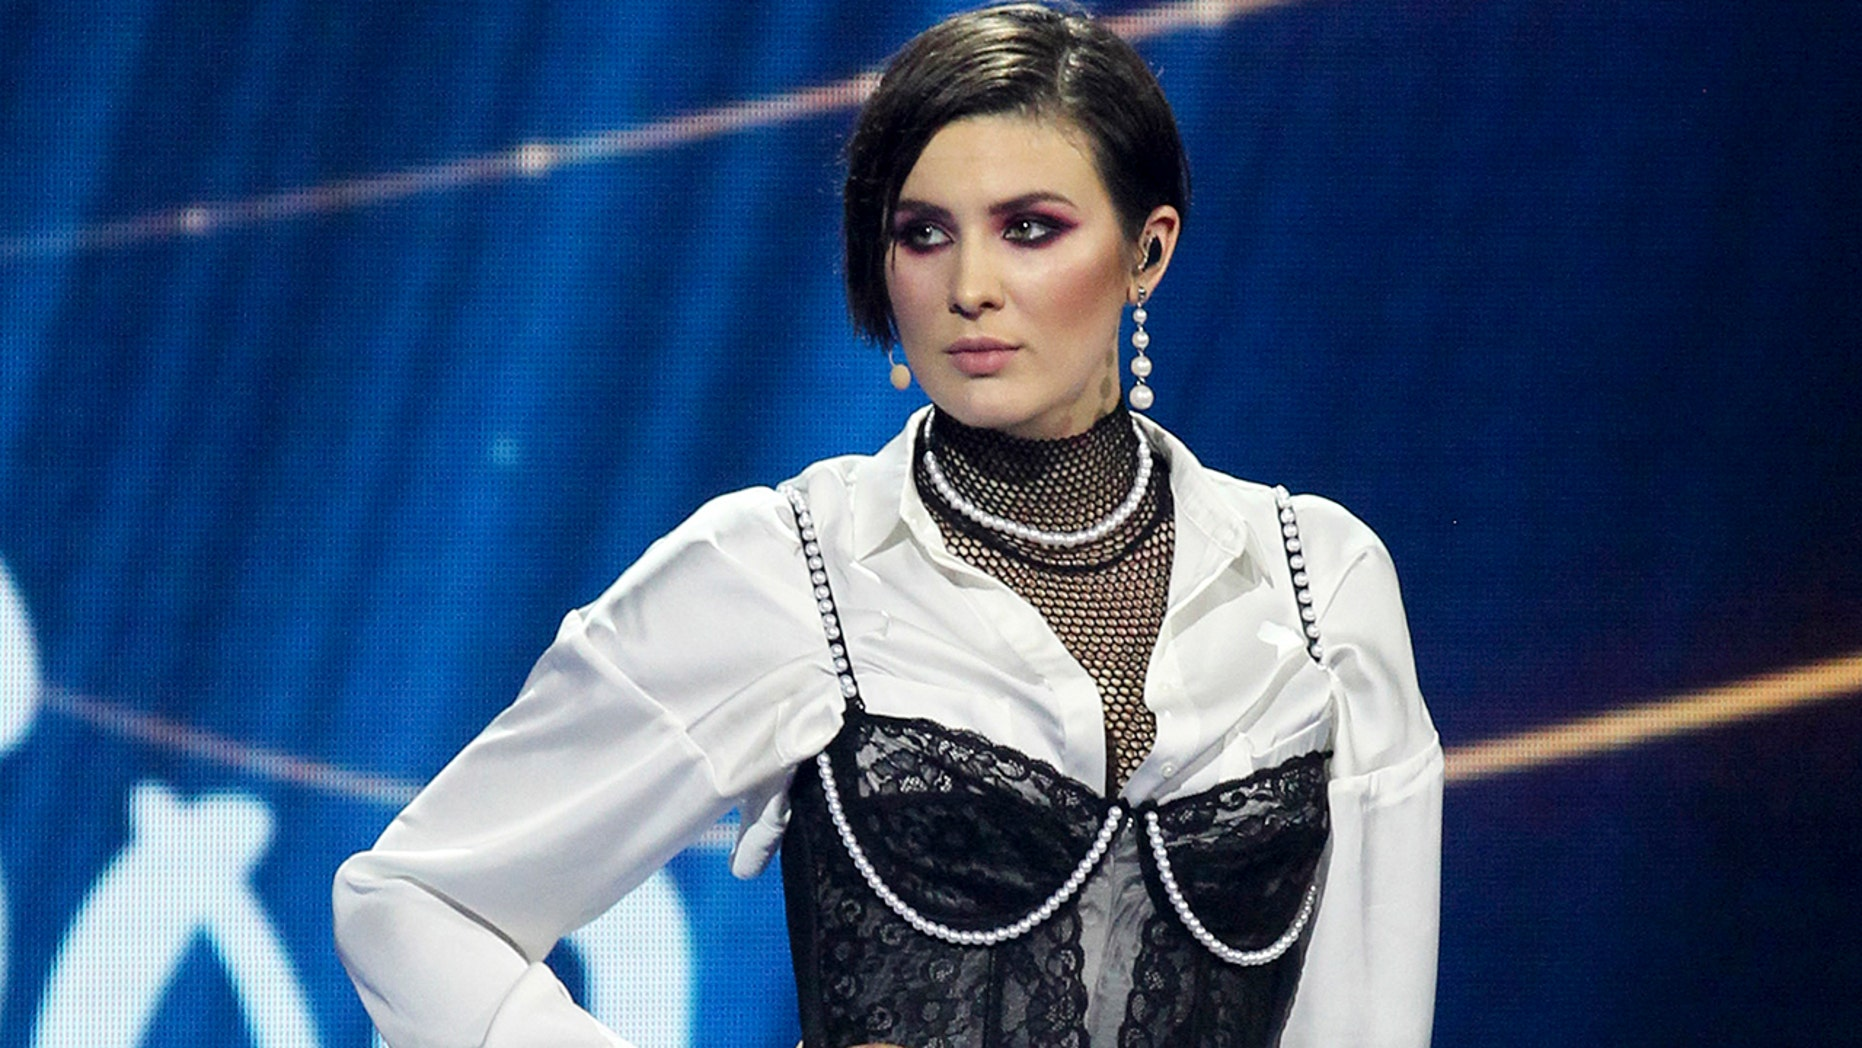 In this photo taken on Sunday, Feb. 24, 2019, Anna Korsun, who performs under the name of Maruv poses for a photo on stage at the national nomination for Eurovision in Kiev, Ukraine. Ukraine has pulled out of this year's Eurovision song contest following a politics-laden dispute between the singer who won the national competition and the country's national public broadcaster. (AP Photo/Vladimir Donsov, File)